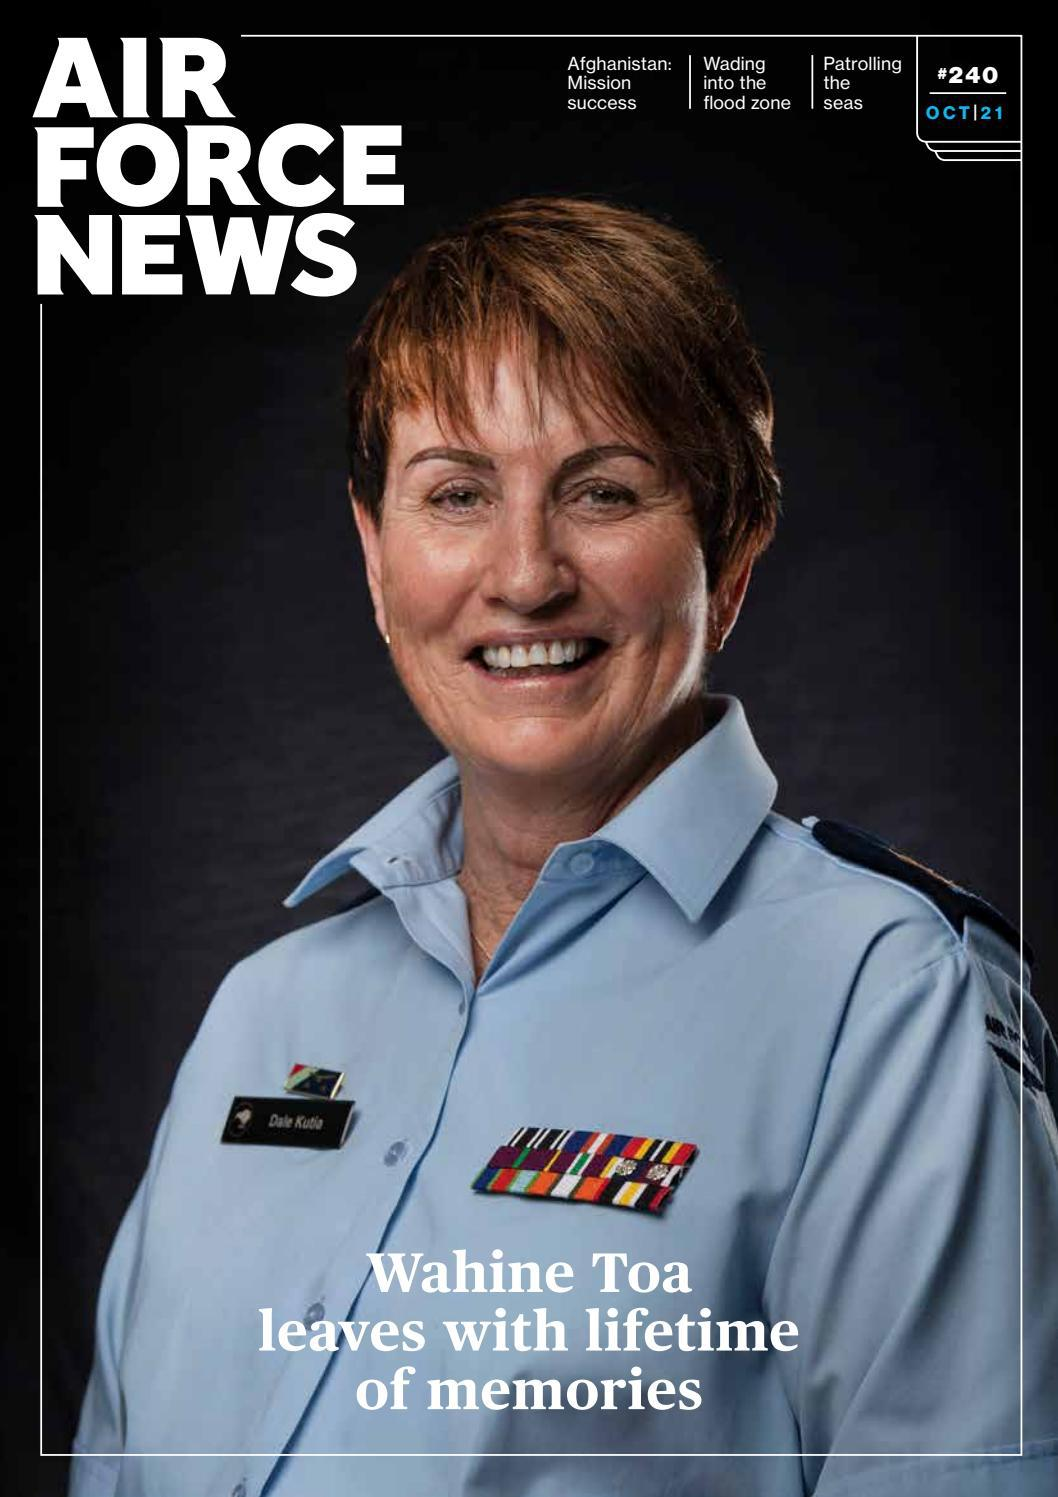 Air Force News magazine Issue 240, October 2021